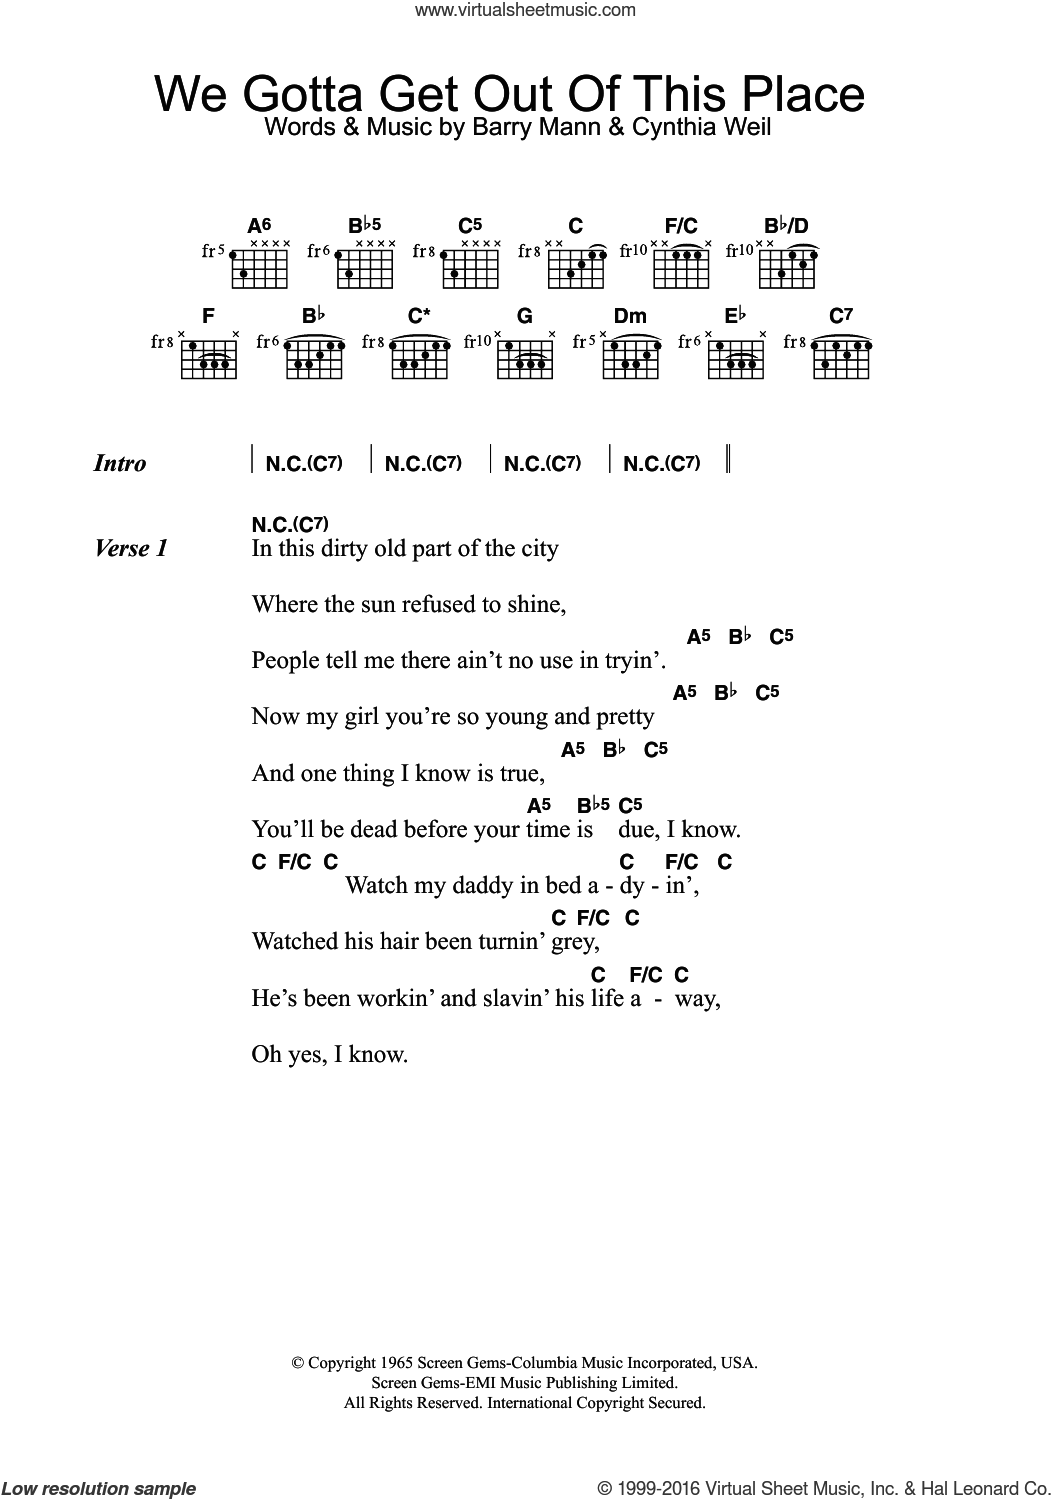 Animals We Gotta Get Out Of This Place Sheet Music For Guitar Chords